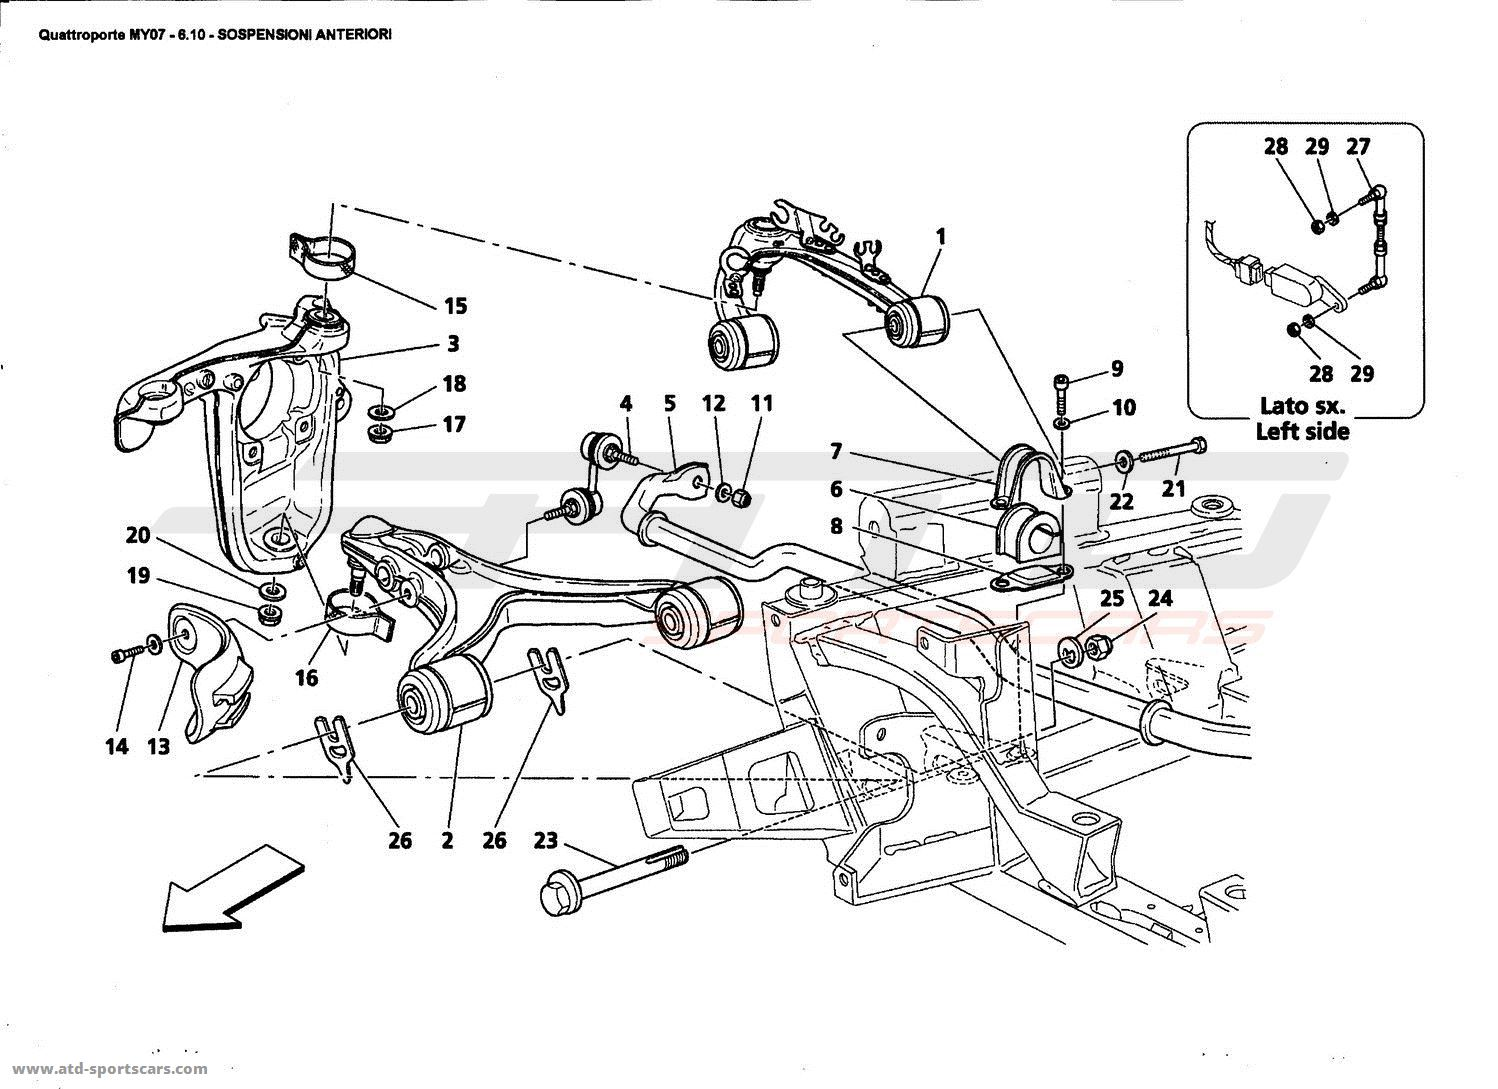 Maserati Ghibli Fuse Diagram - Wiring Diagram And Engine Diagram